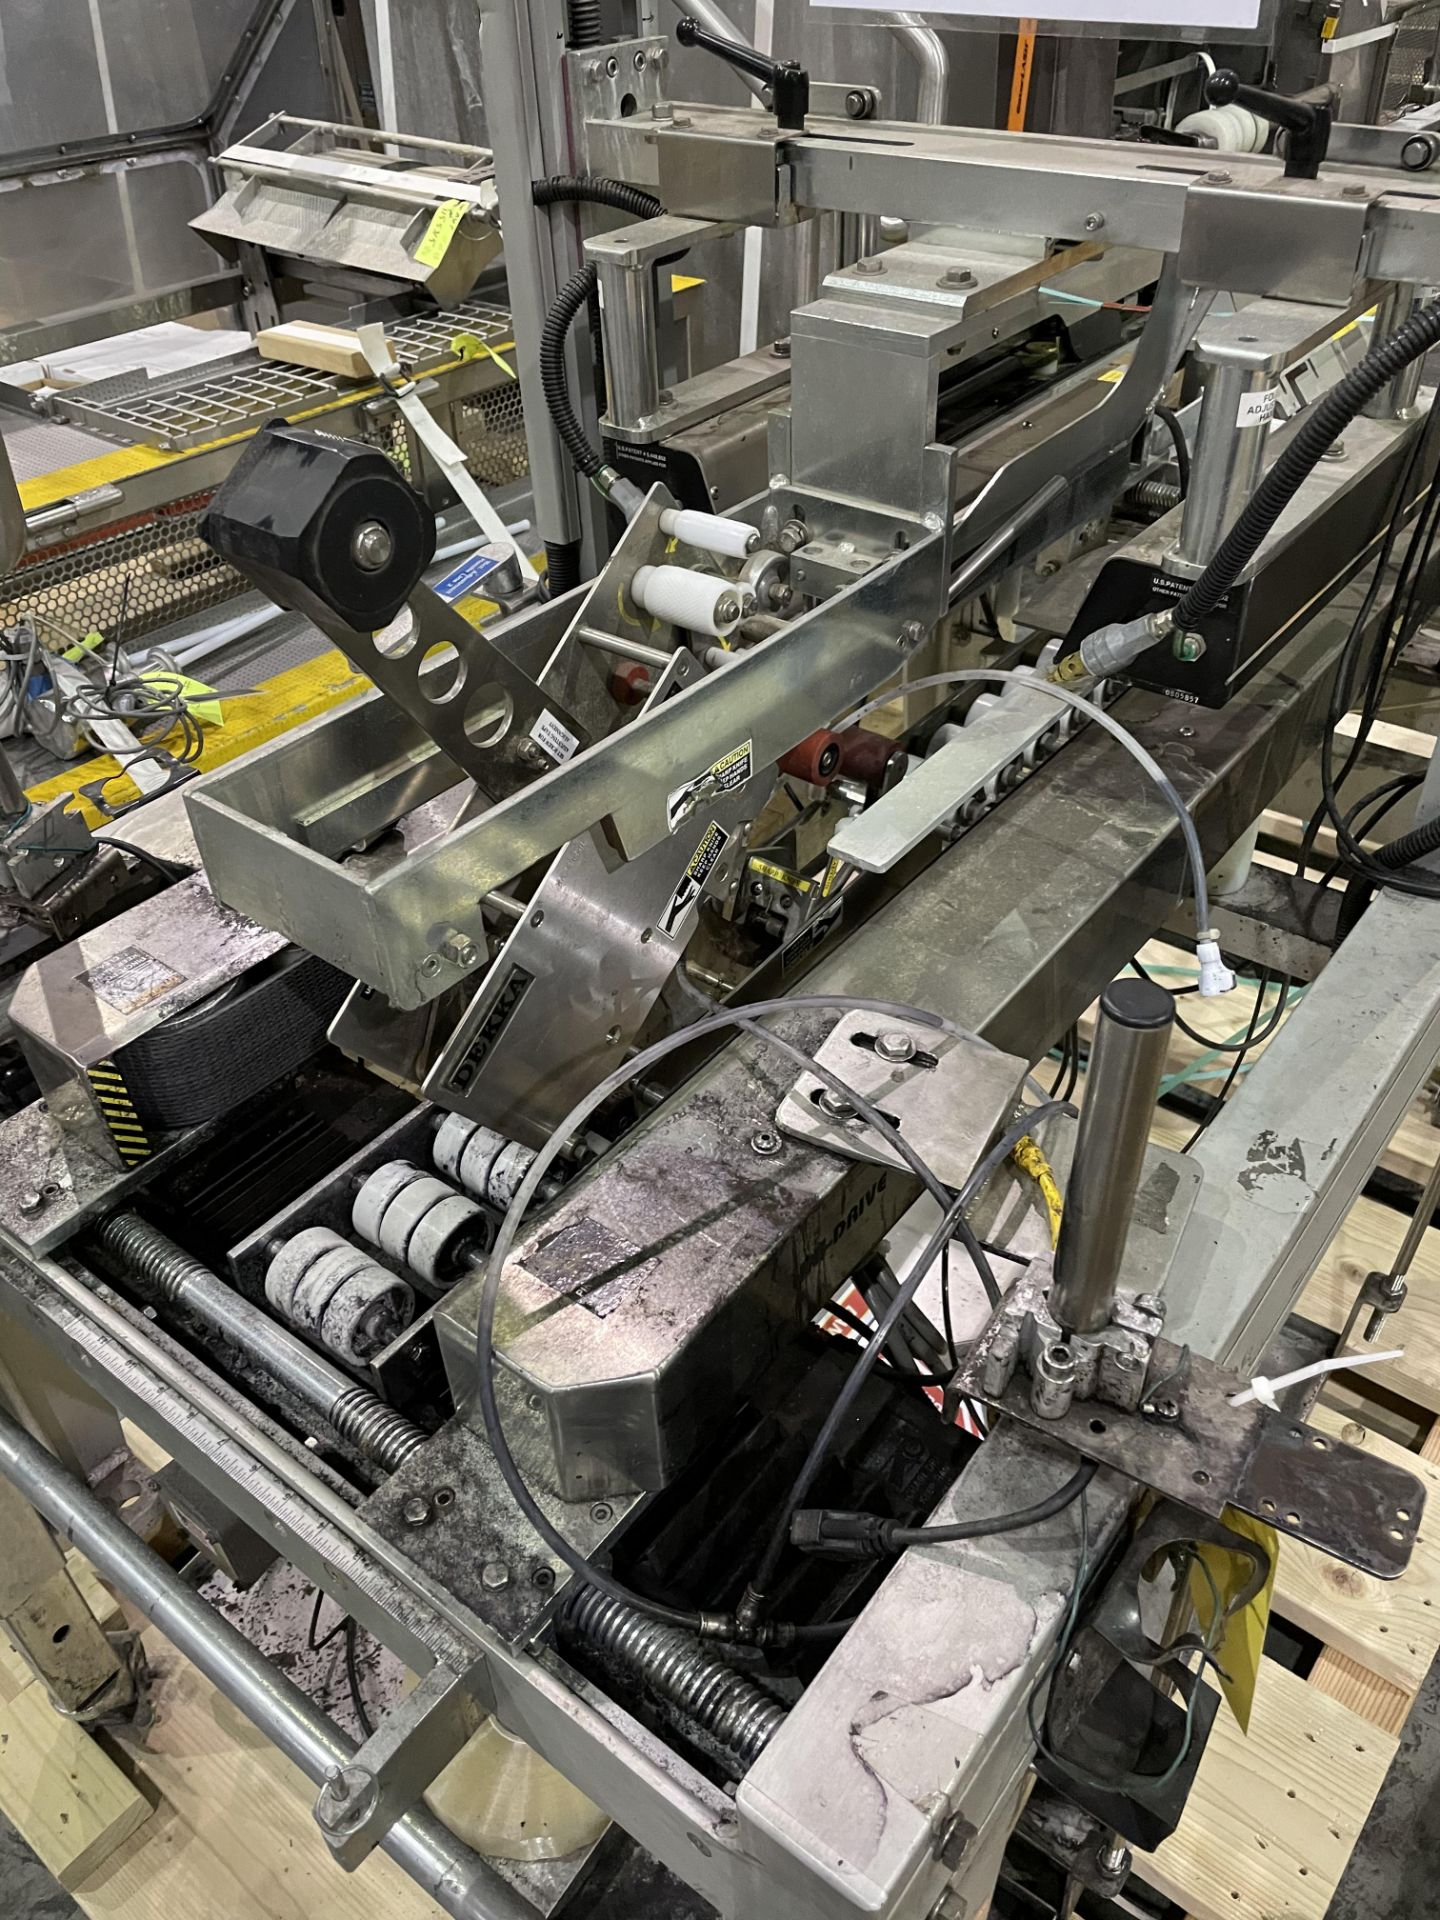 Belcor 252 Taper with Snap Folder Closer Top And Bottom Tape Heads and Marsh Patrion Printer Loading - Image 2 of 8